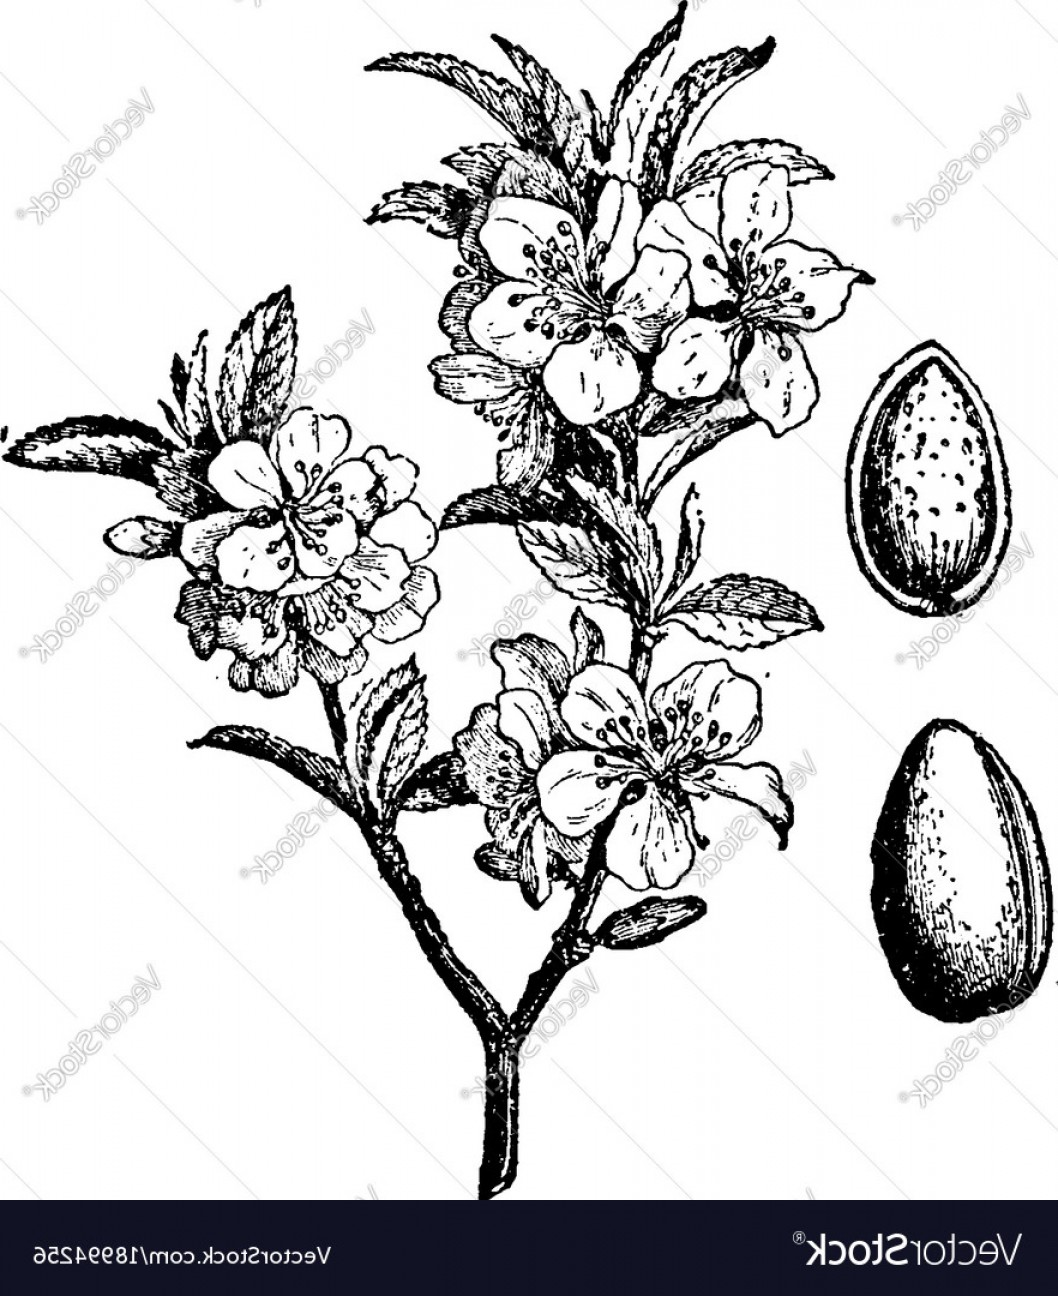 Almond Tree Vector: Almond Tree And Fruit Vintage Vector